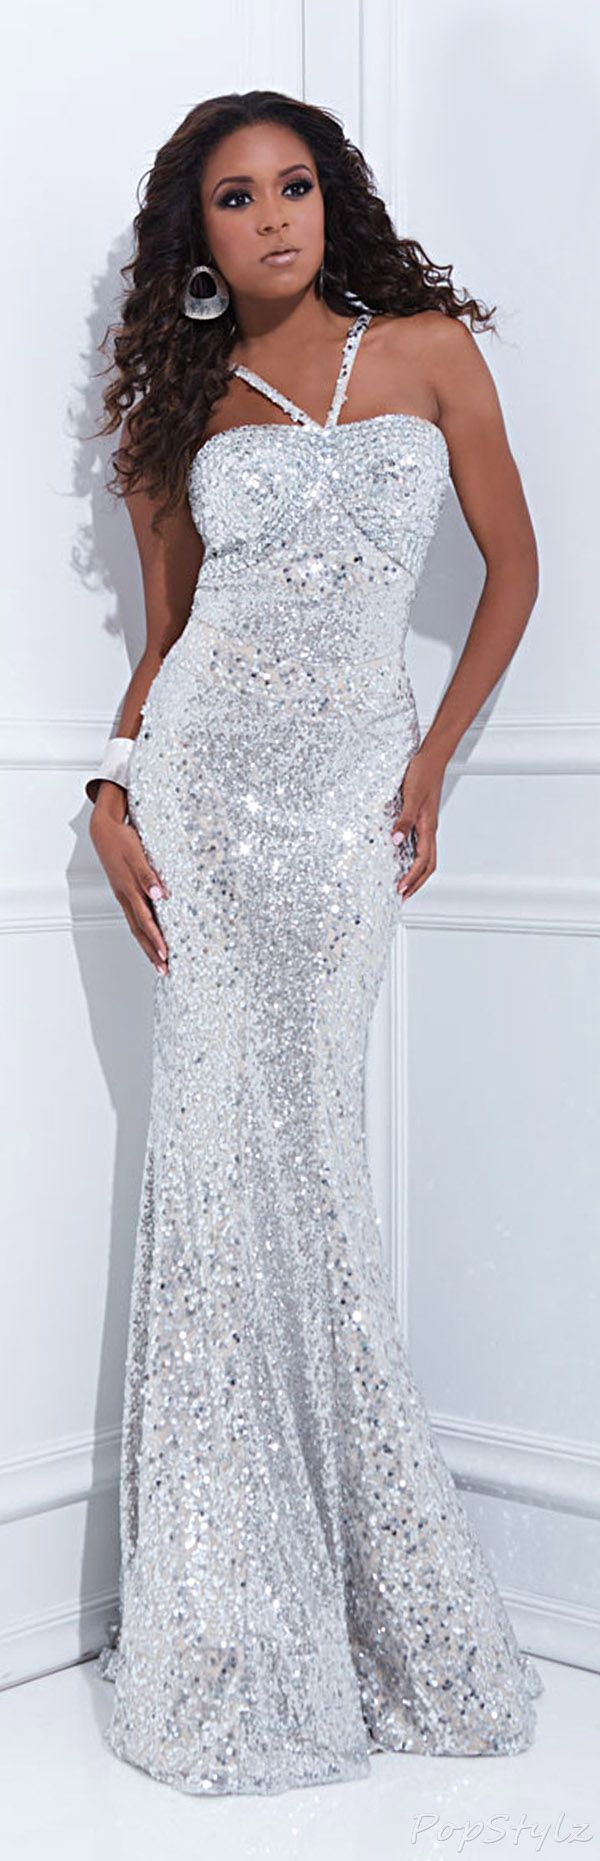 Tony Bowls Paris 114739 Evening Gown perfection!  So glamorous for your special occasion dressing!